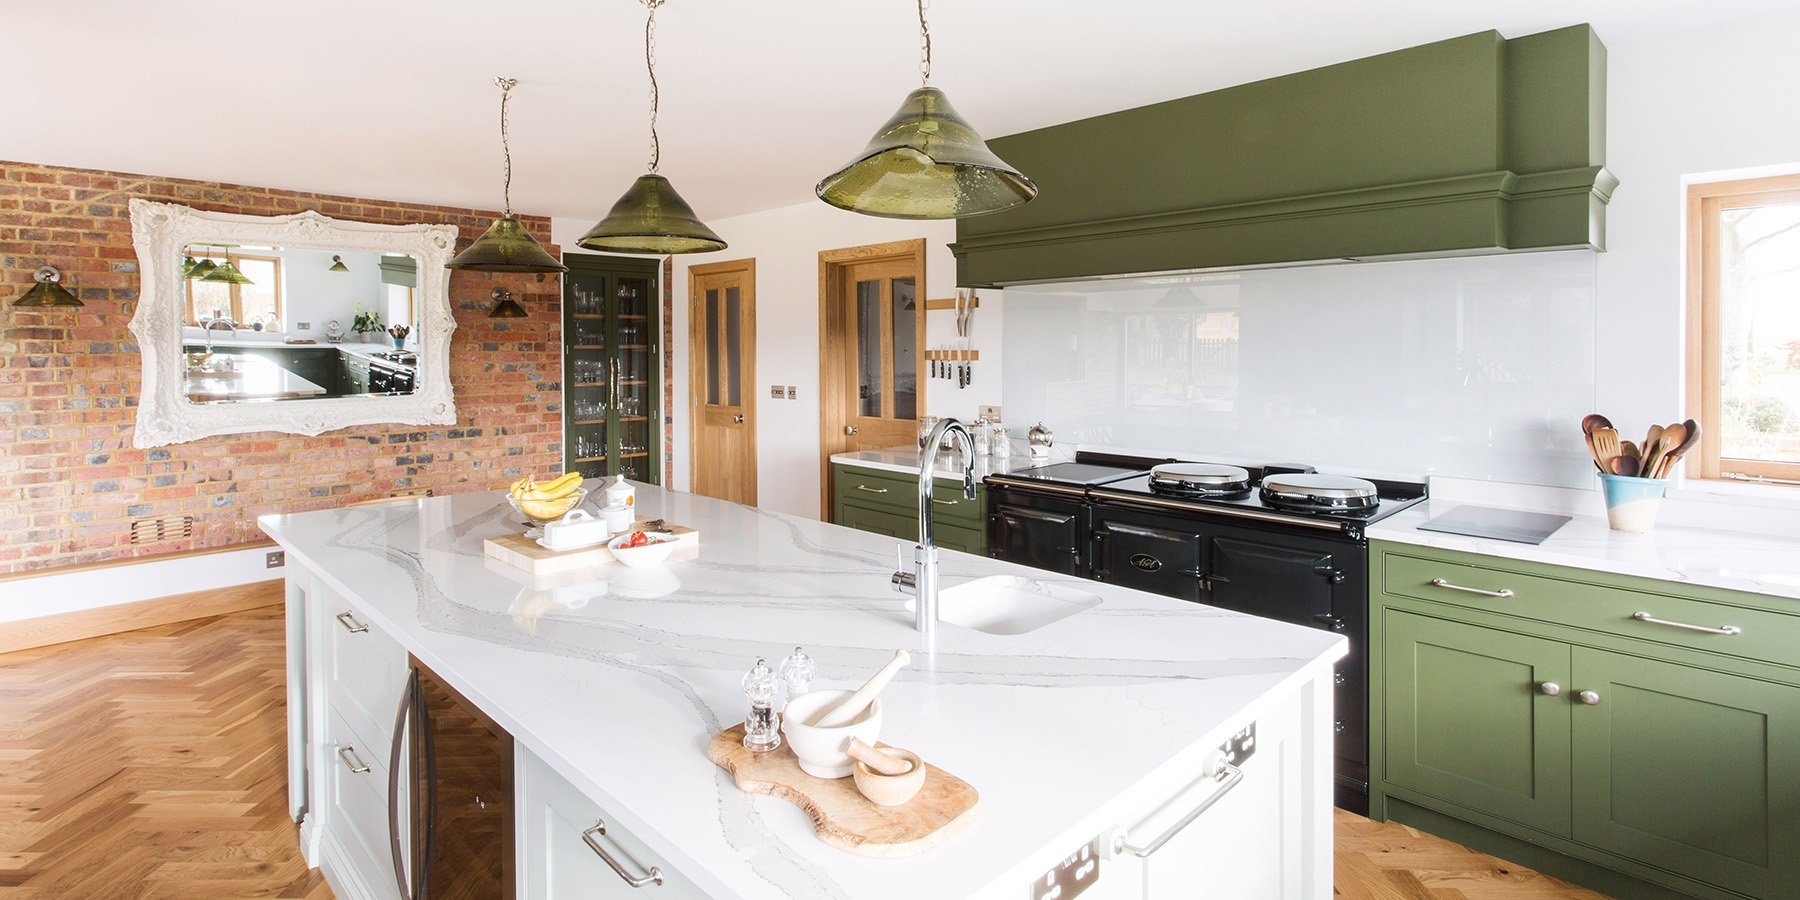 Classic Shaker Kitchen With Central Island - Burlanes handmade Wellsdown kitchen with central island, white worktops and AGA Total Control.